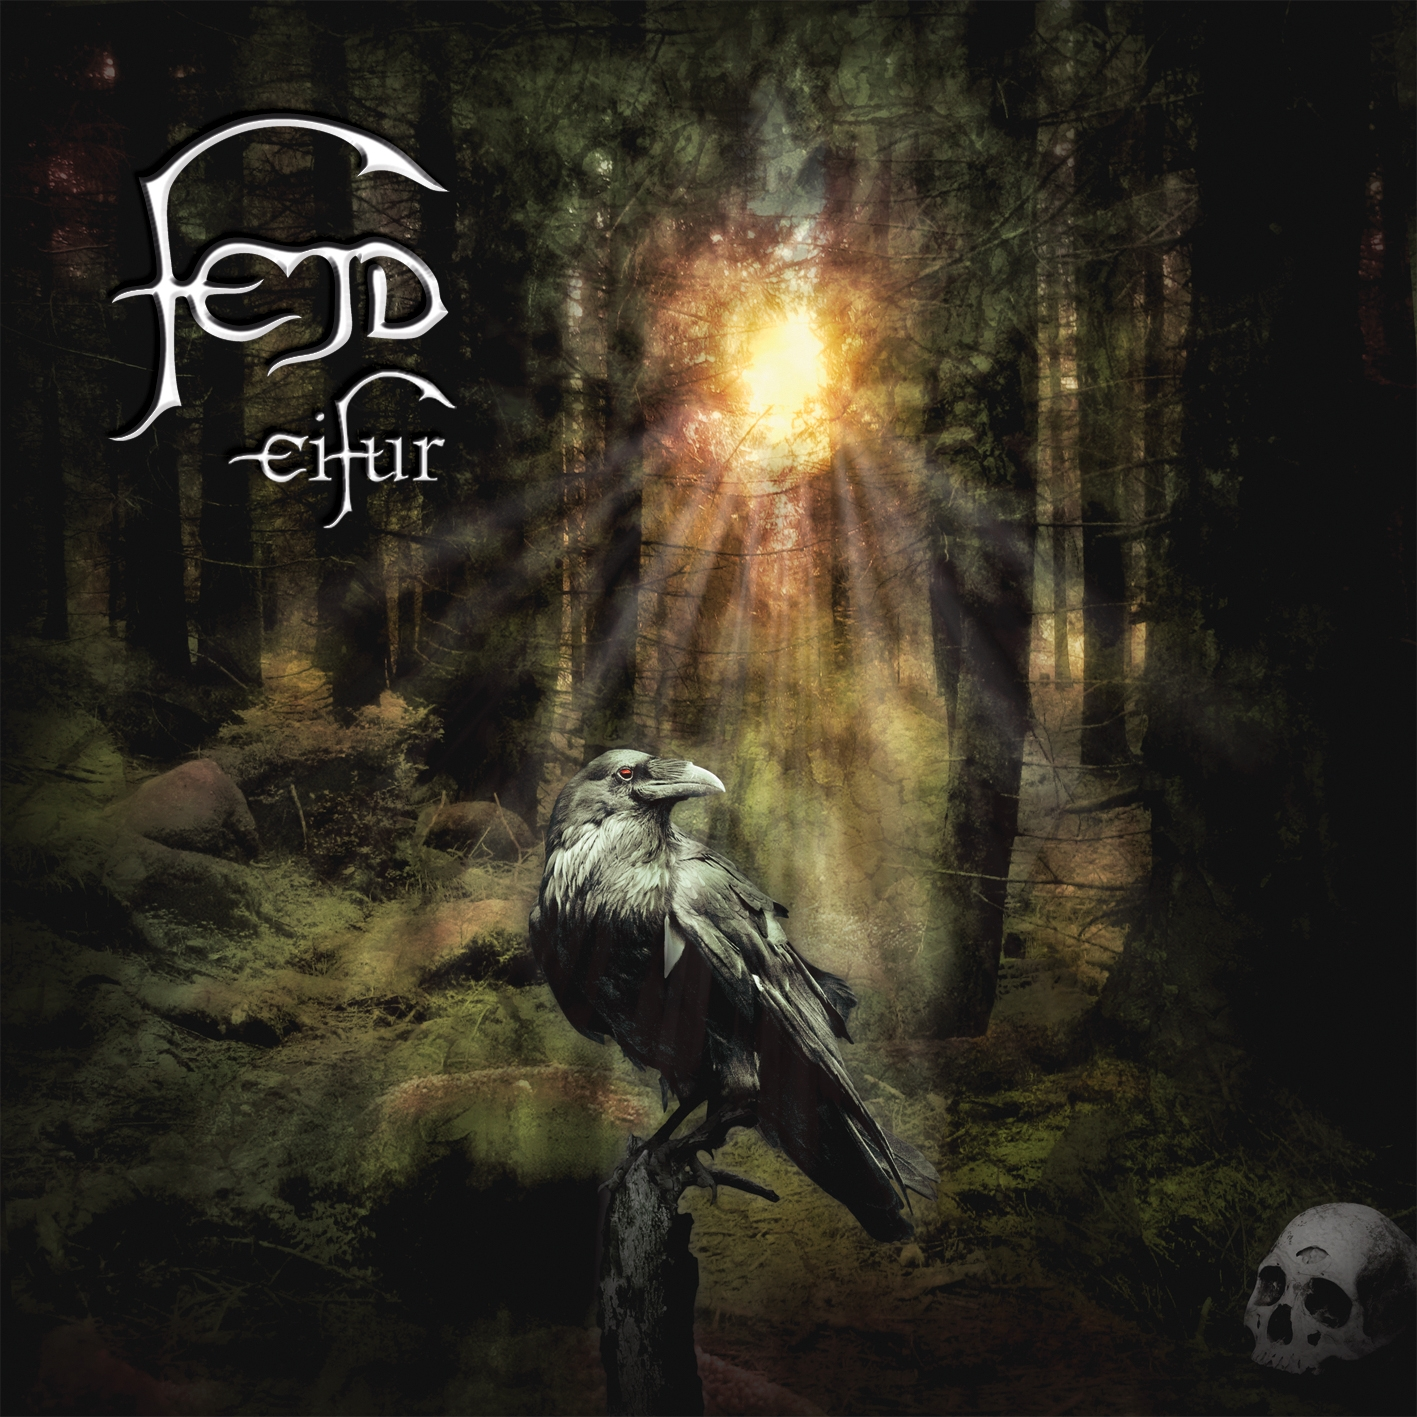 Fejd – Eifur Review